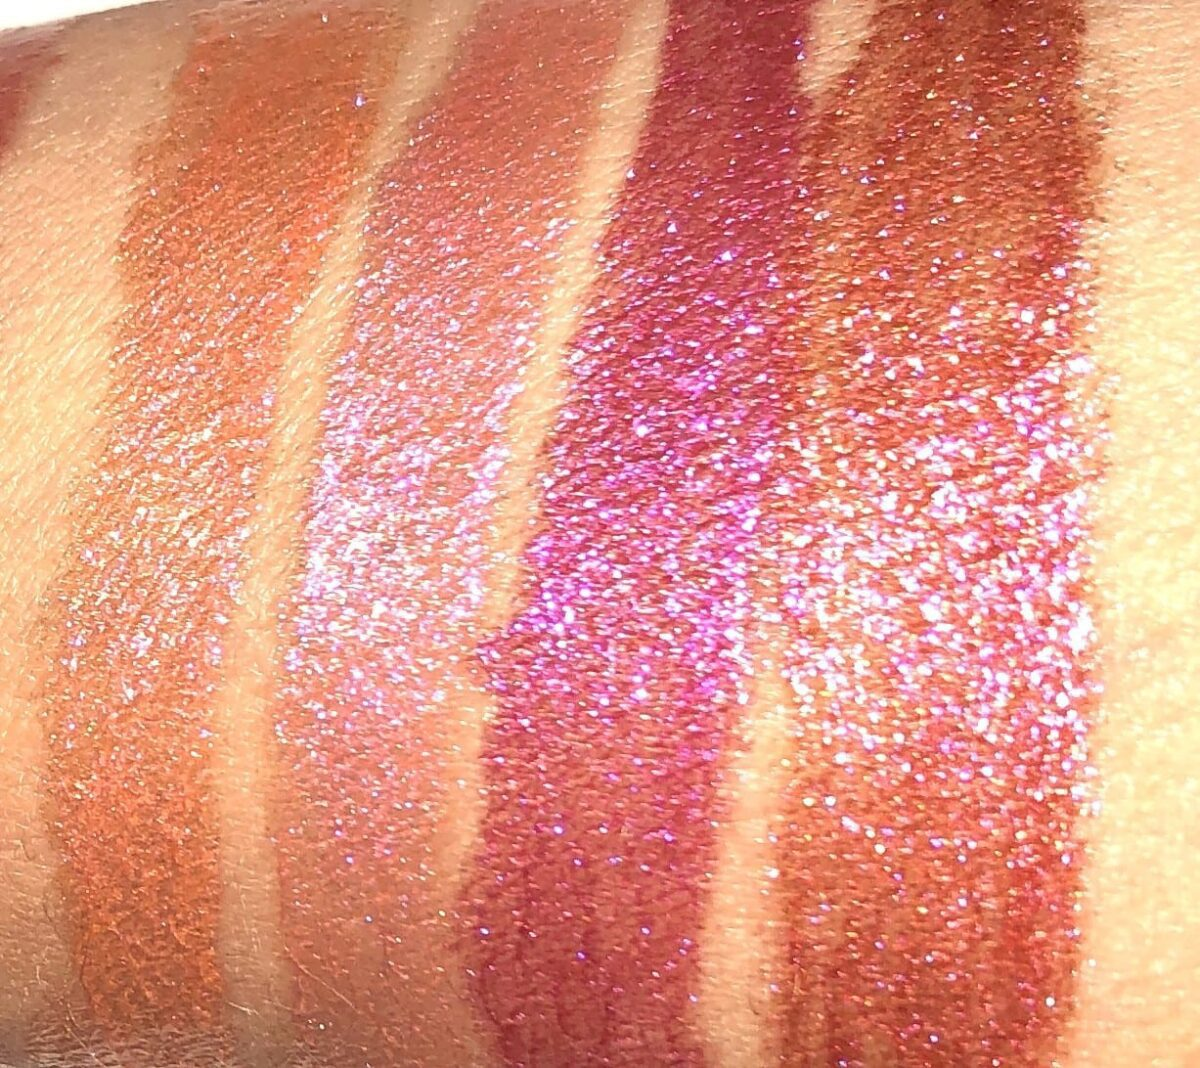 SWATCHES LEFT TO RIGHT: CORALIASON, UNDER YOUR SPELL, VENOMISTRESS, AND GLOWING GARNET